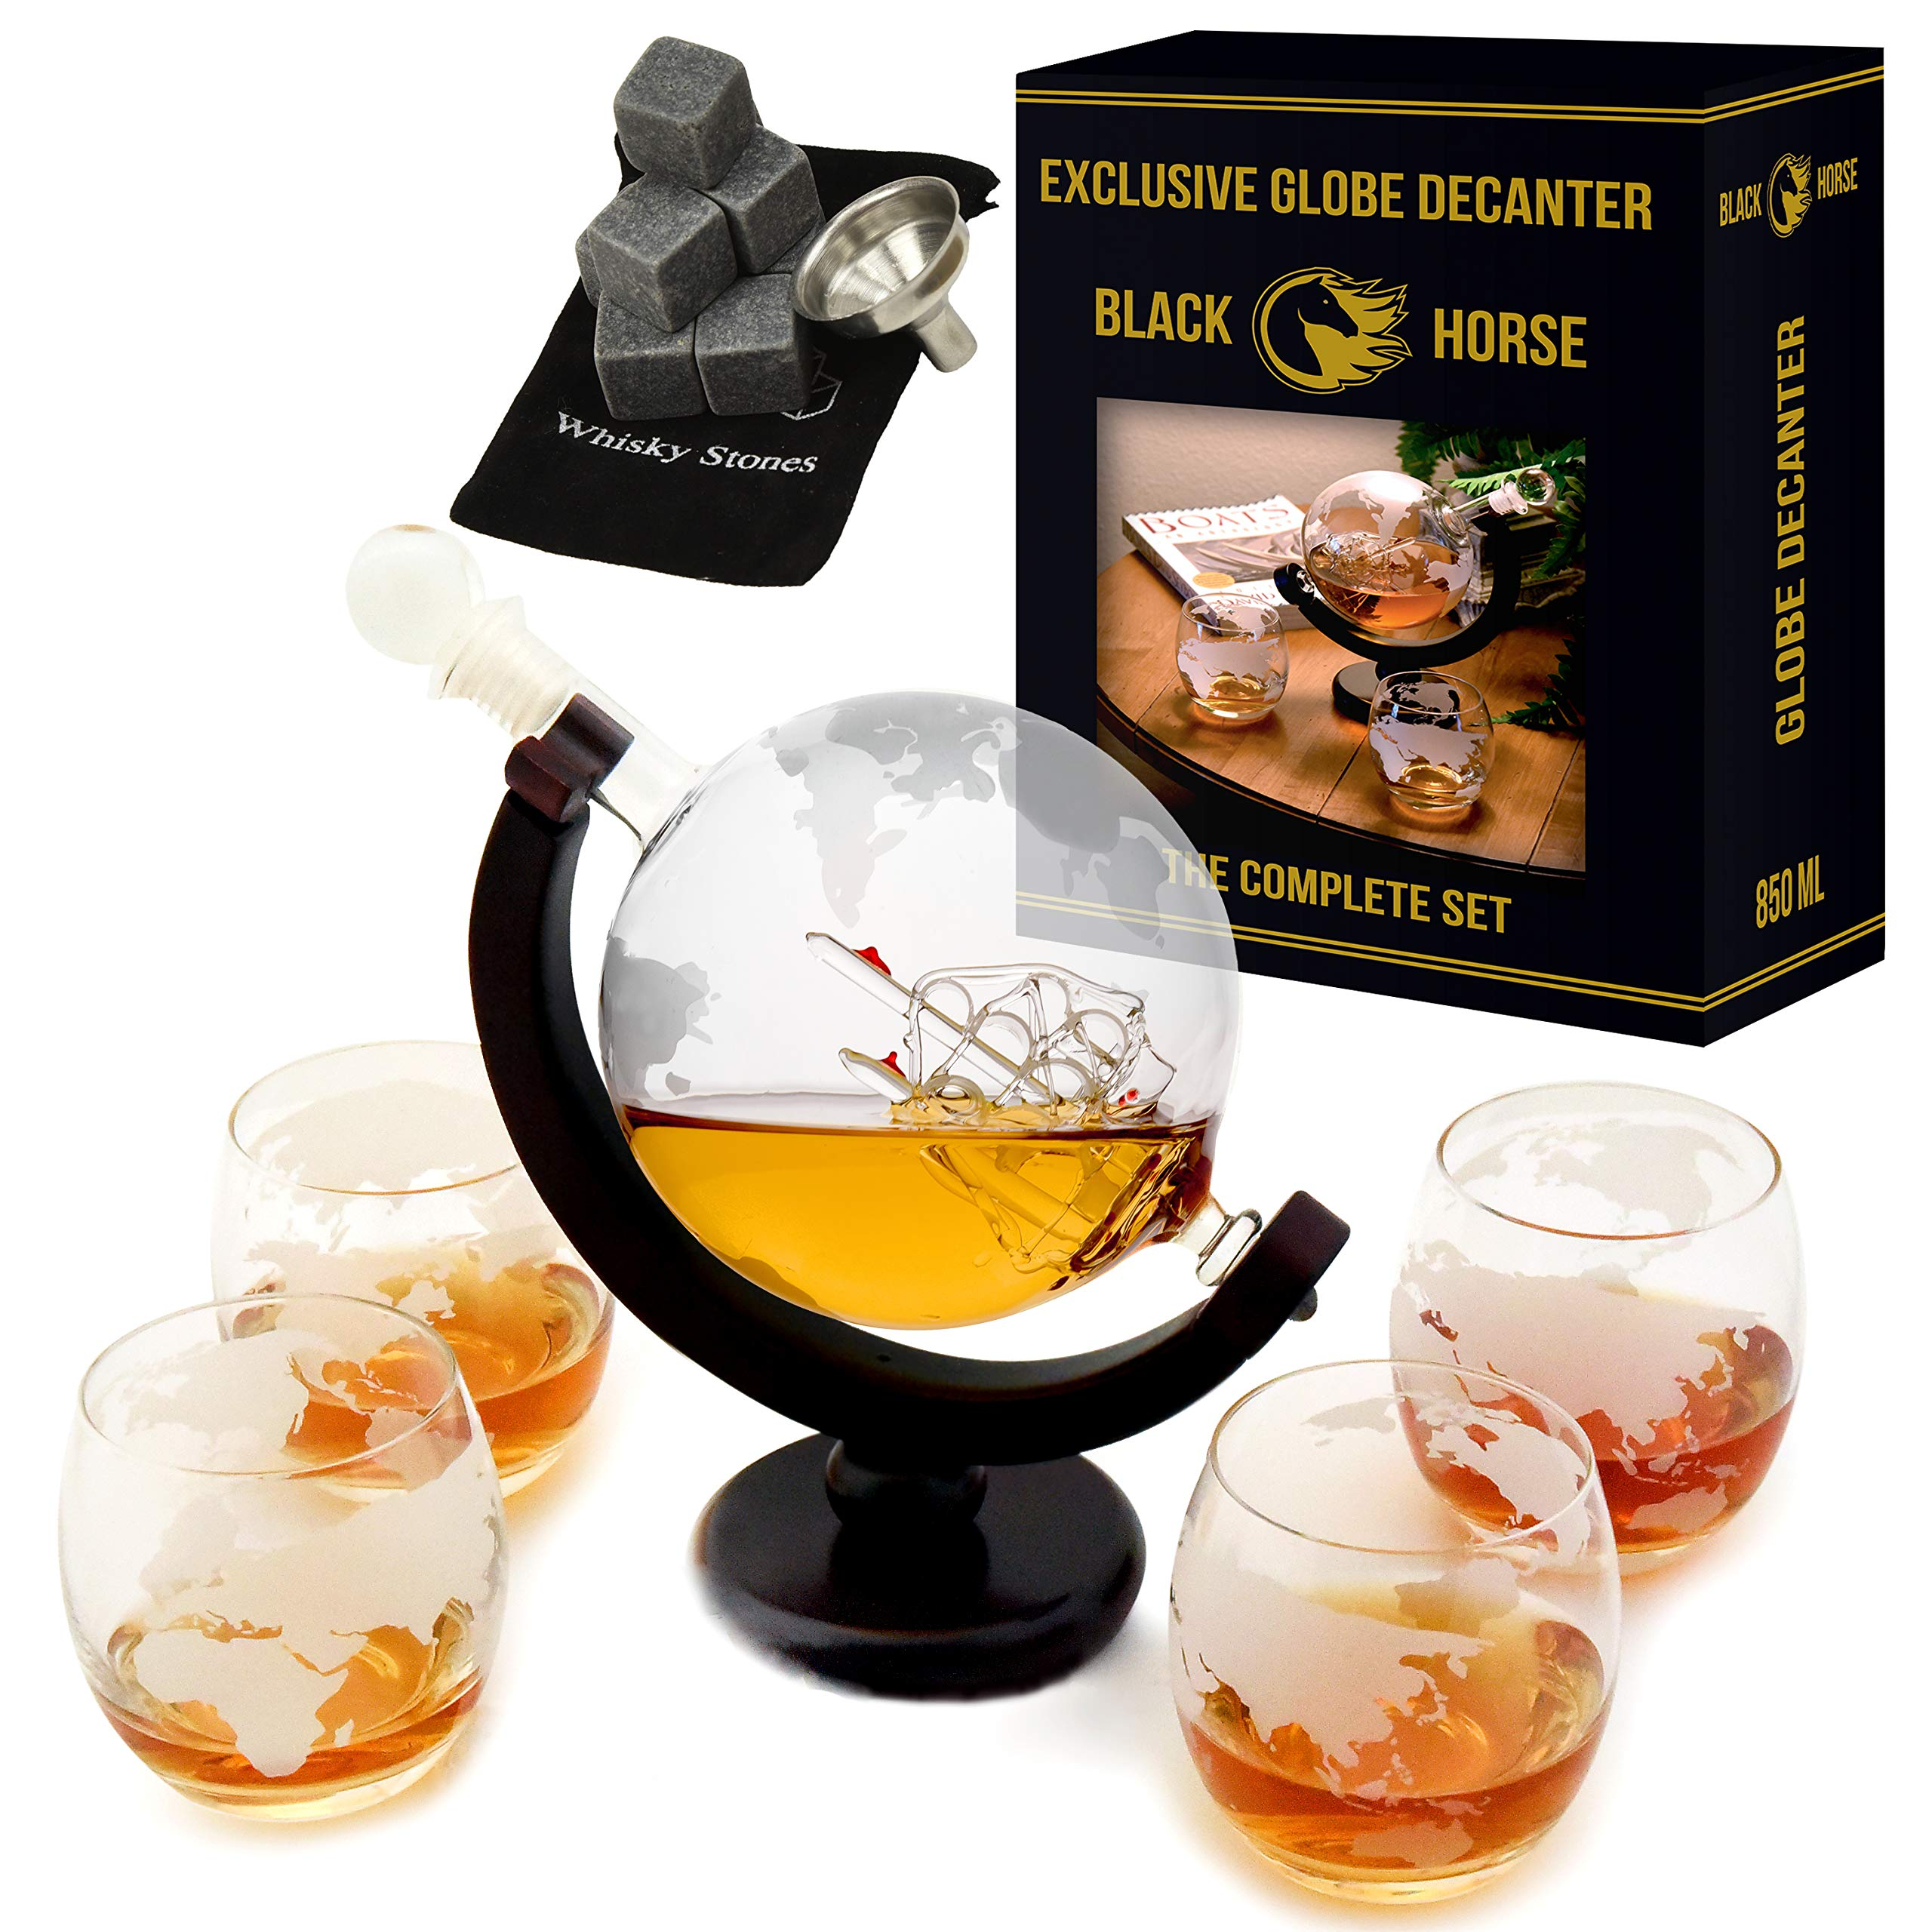 Whiskey Decanter - Best Ship Whiskey Decanter Set (30oz) with nice Gift Box - Ideal Christmas gifts for men - Housewarming gifts for new home -  Globe Decanter for Scotch or Liquor        by Black Horse (Image #1)